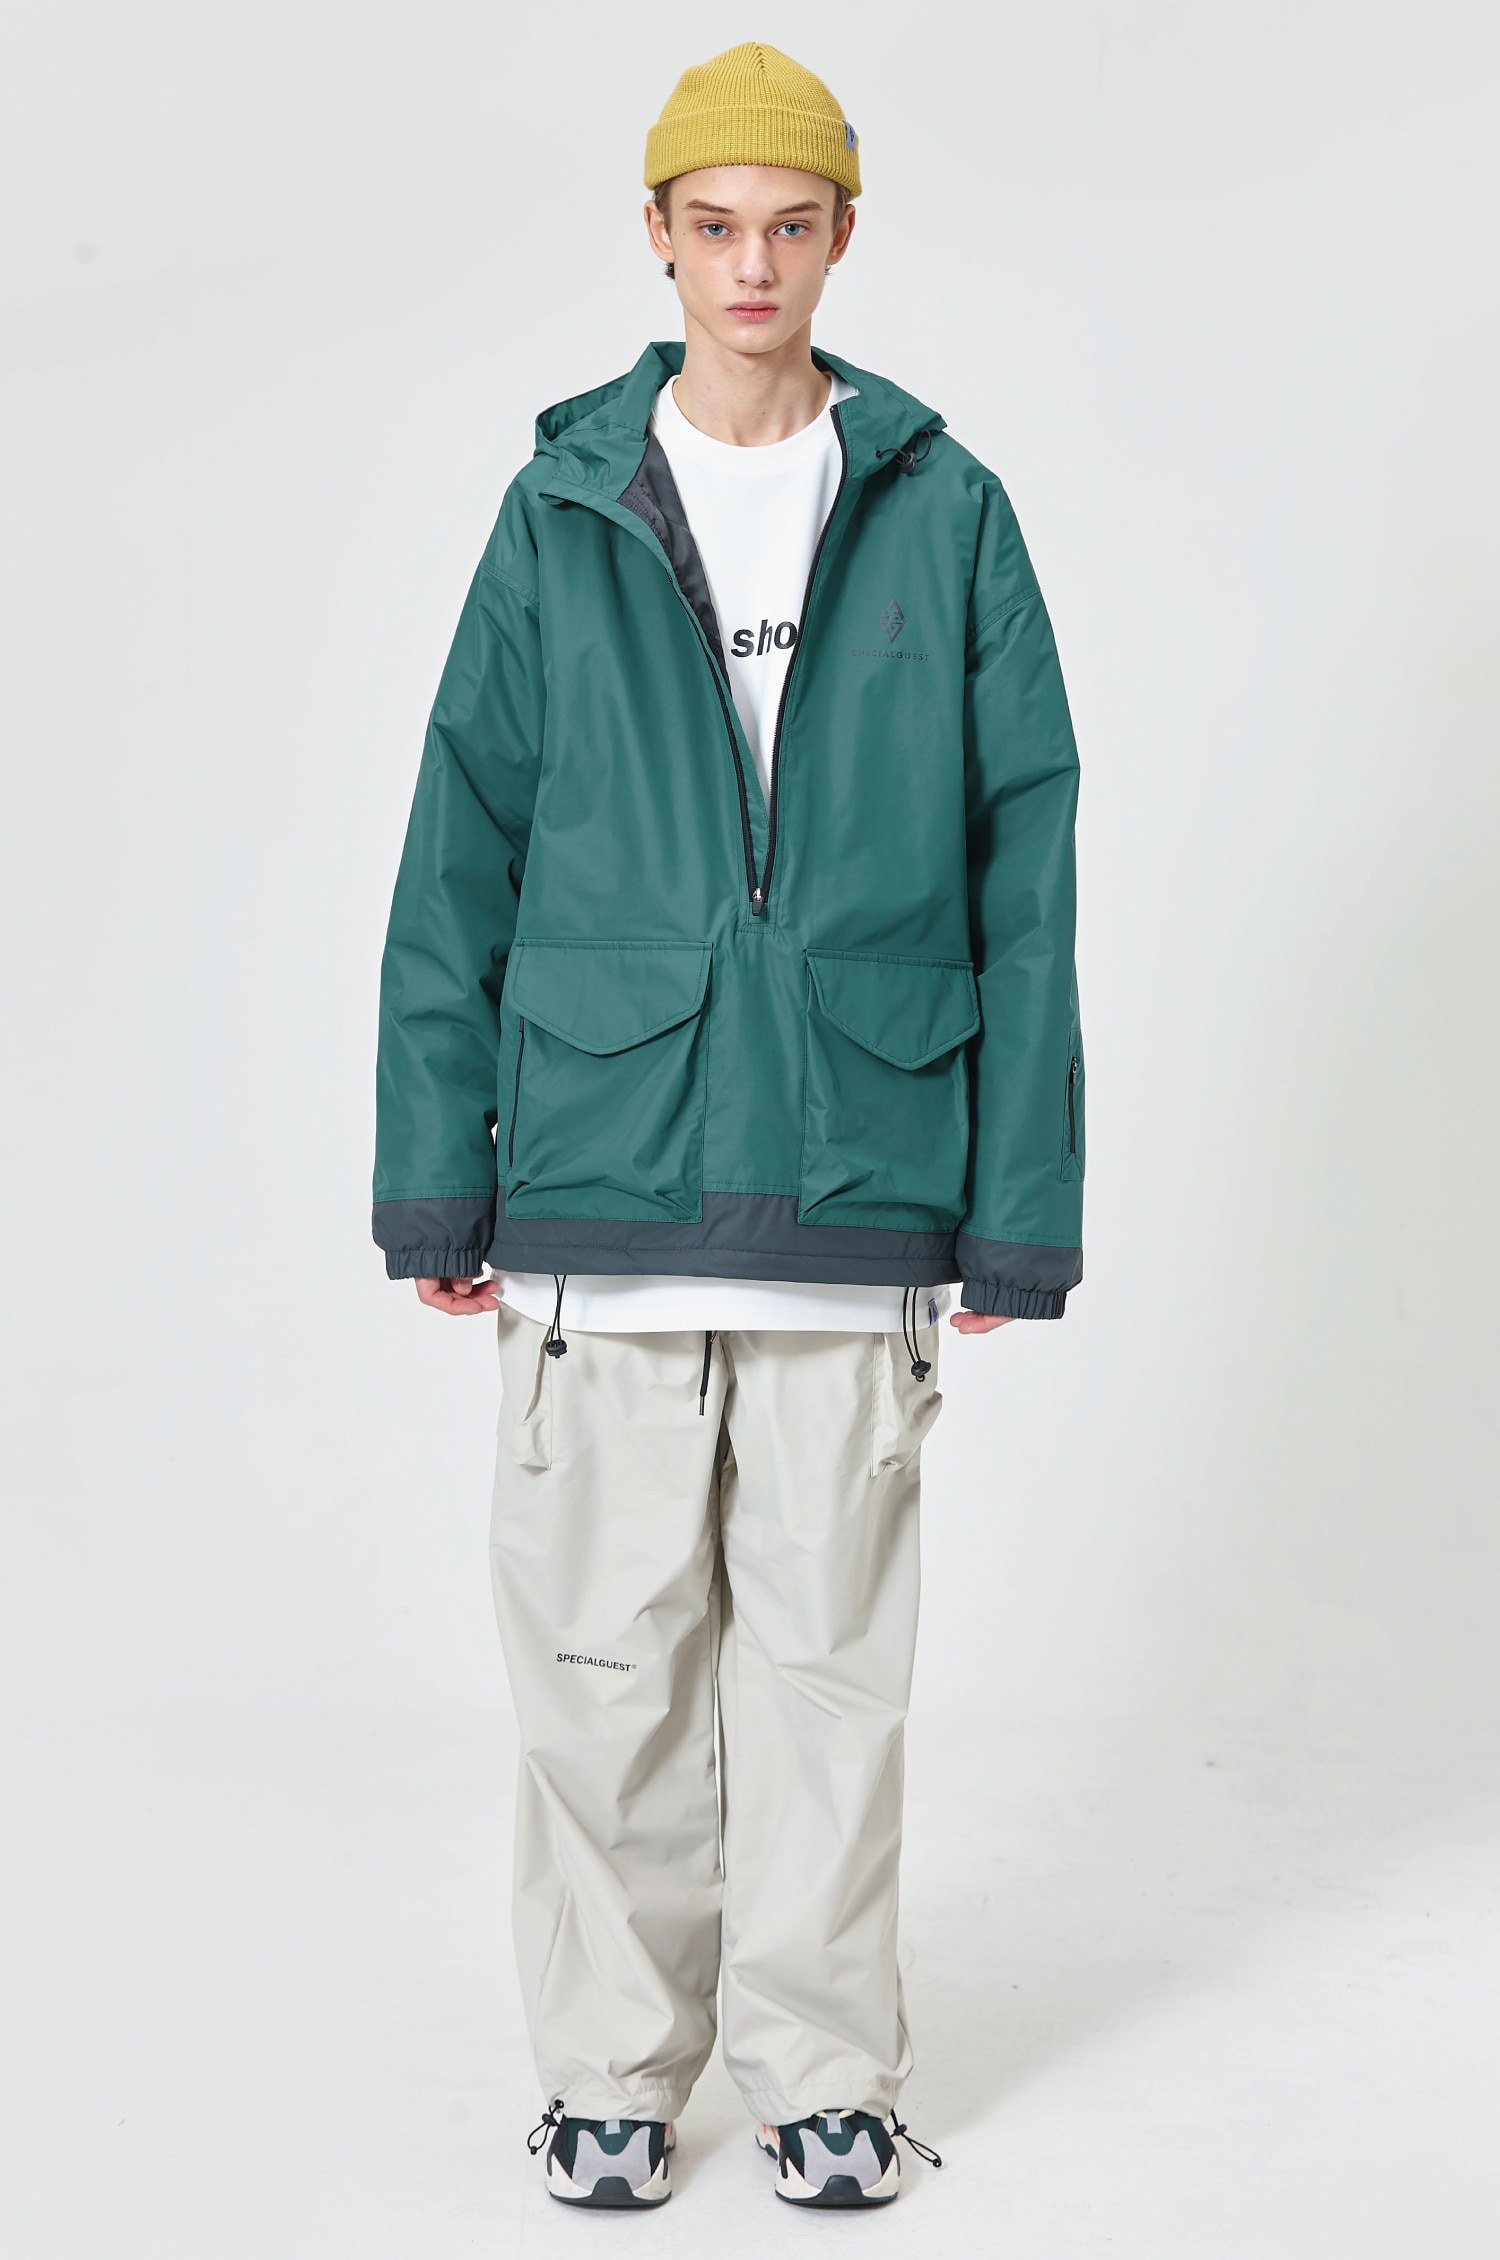 SET 27 - ANORAK / PANTS